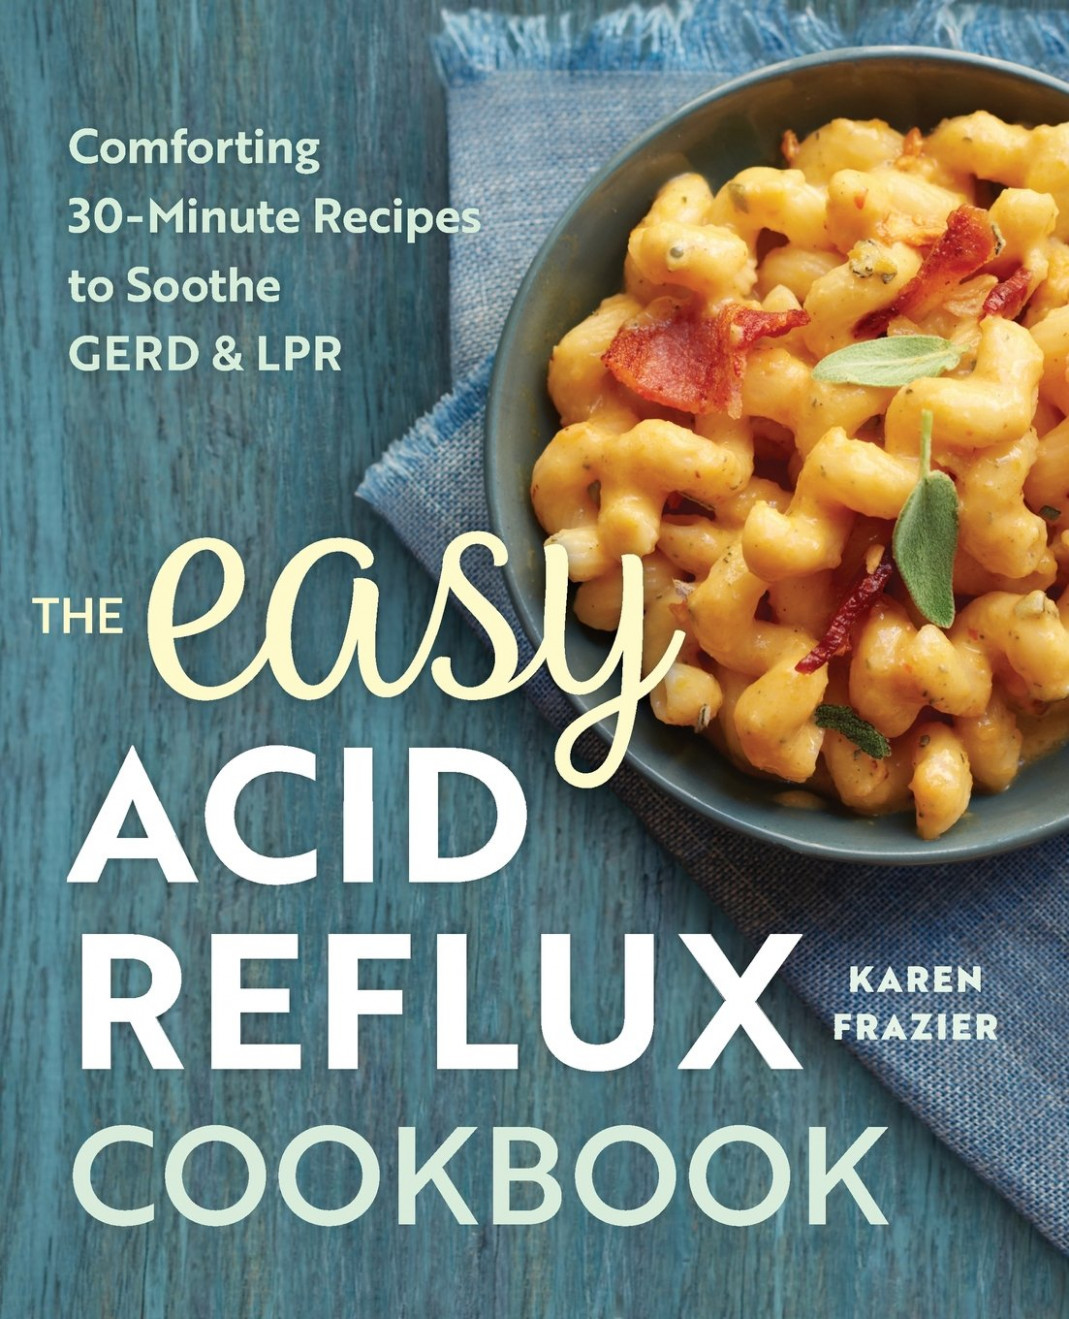 The Easy Acid Reflux Cookbook: Comforting 14-Minute Recipes ..